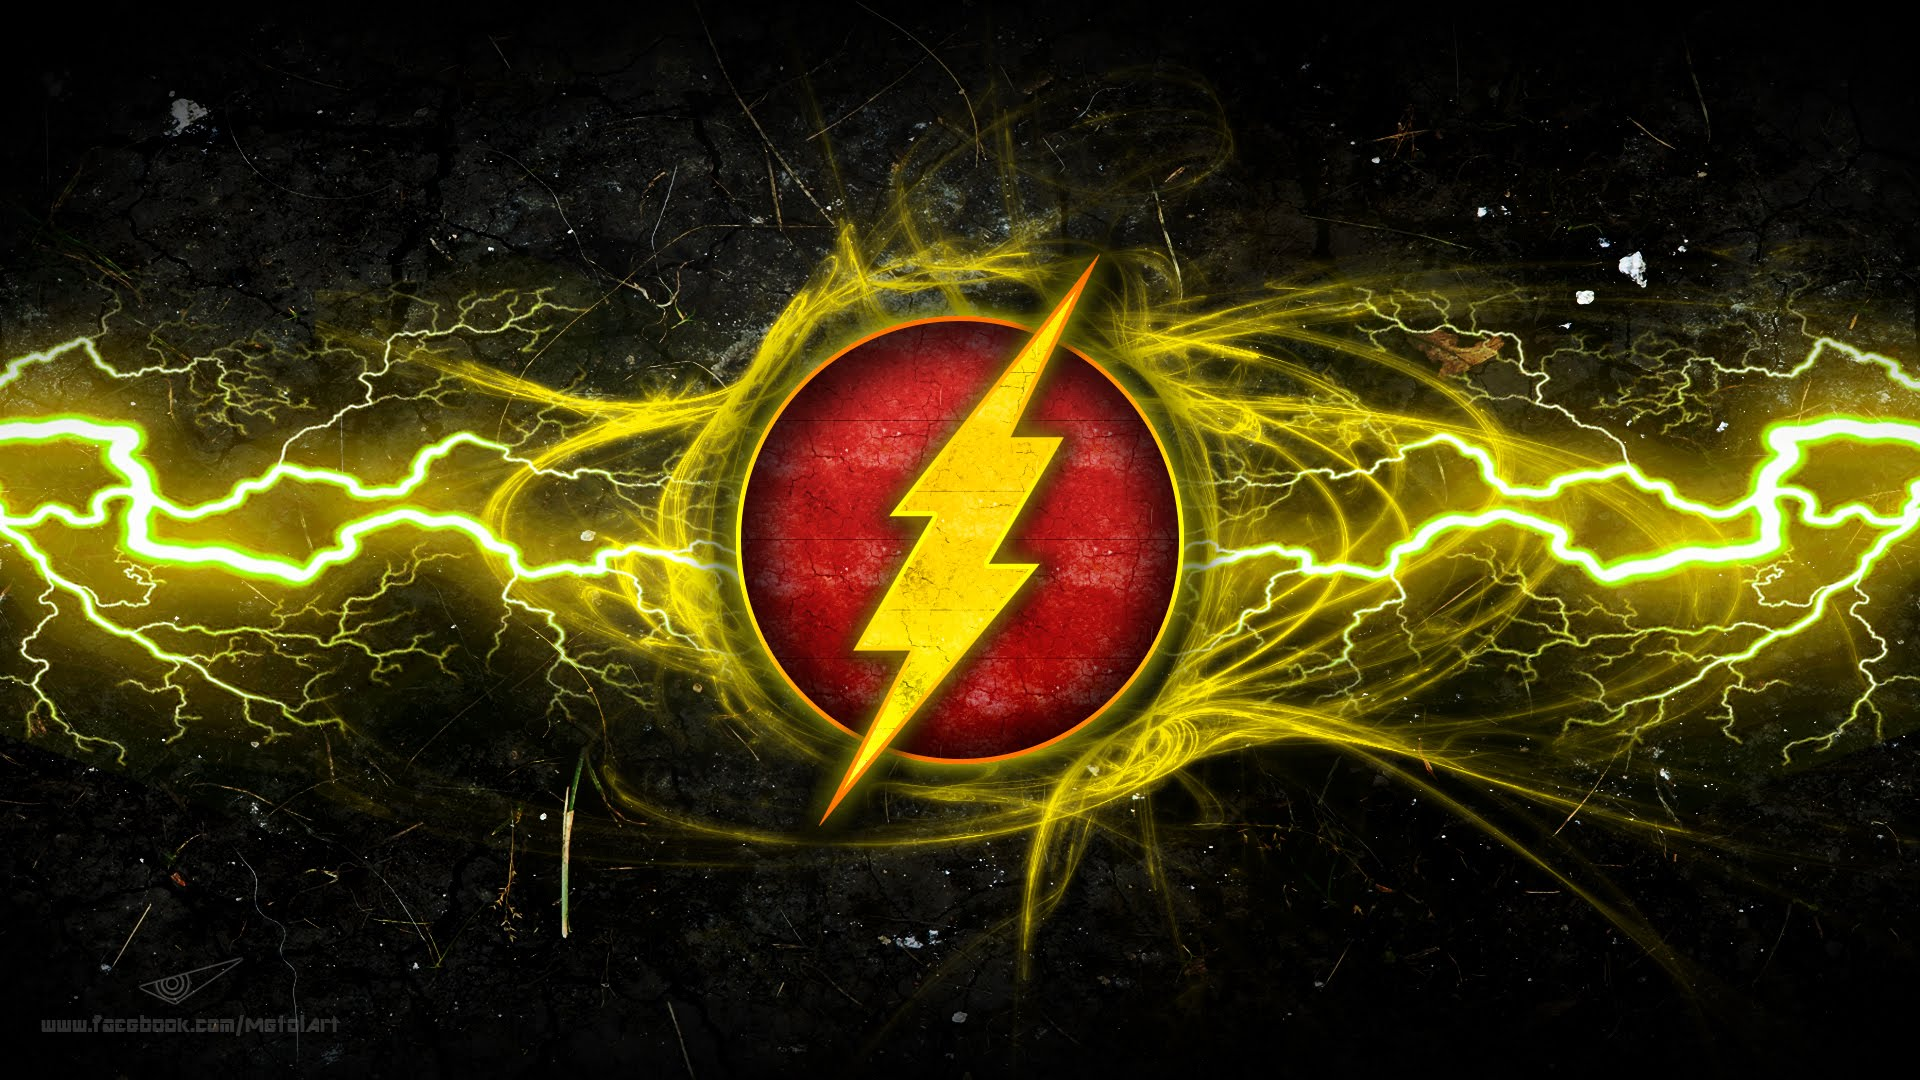 The Flash 2017 Wallpapers - Top Free The Flash 2017